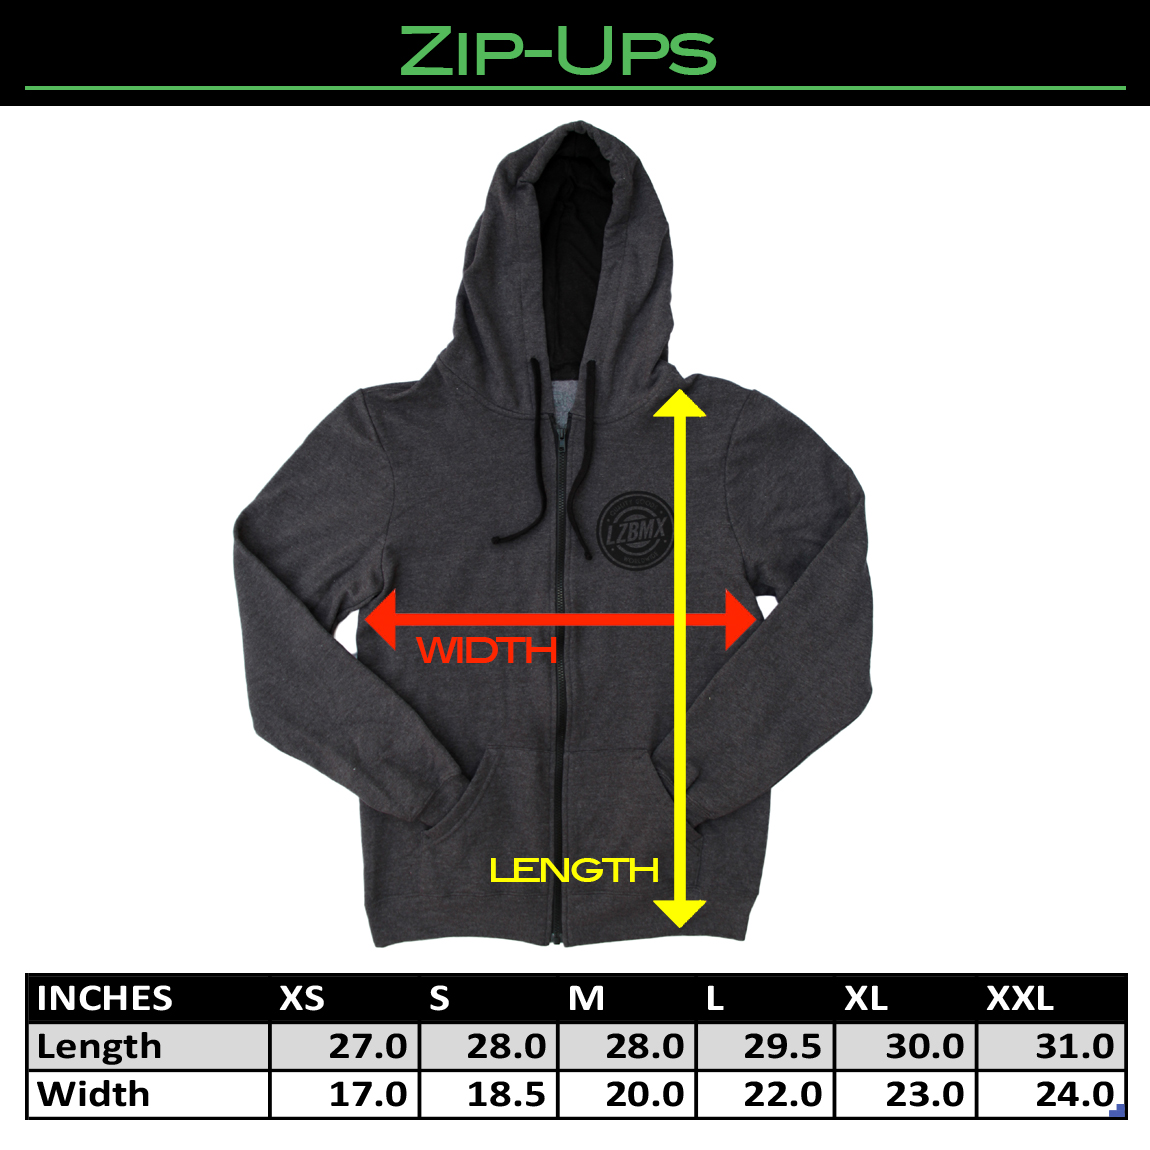 zip-up-sizing.jpg